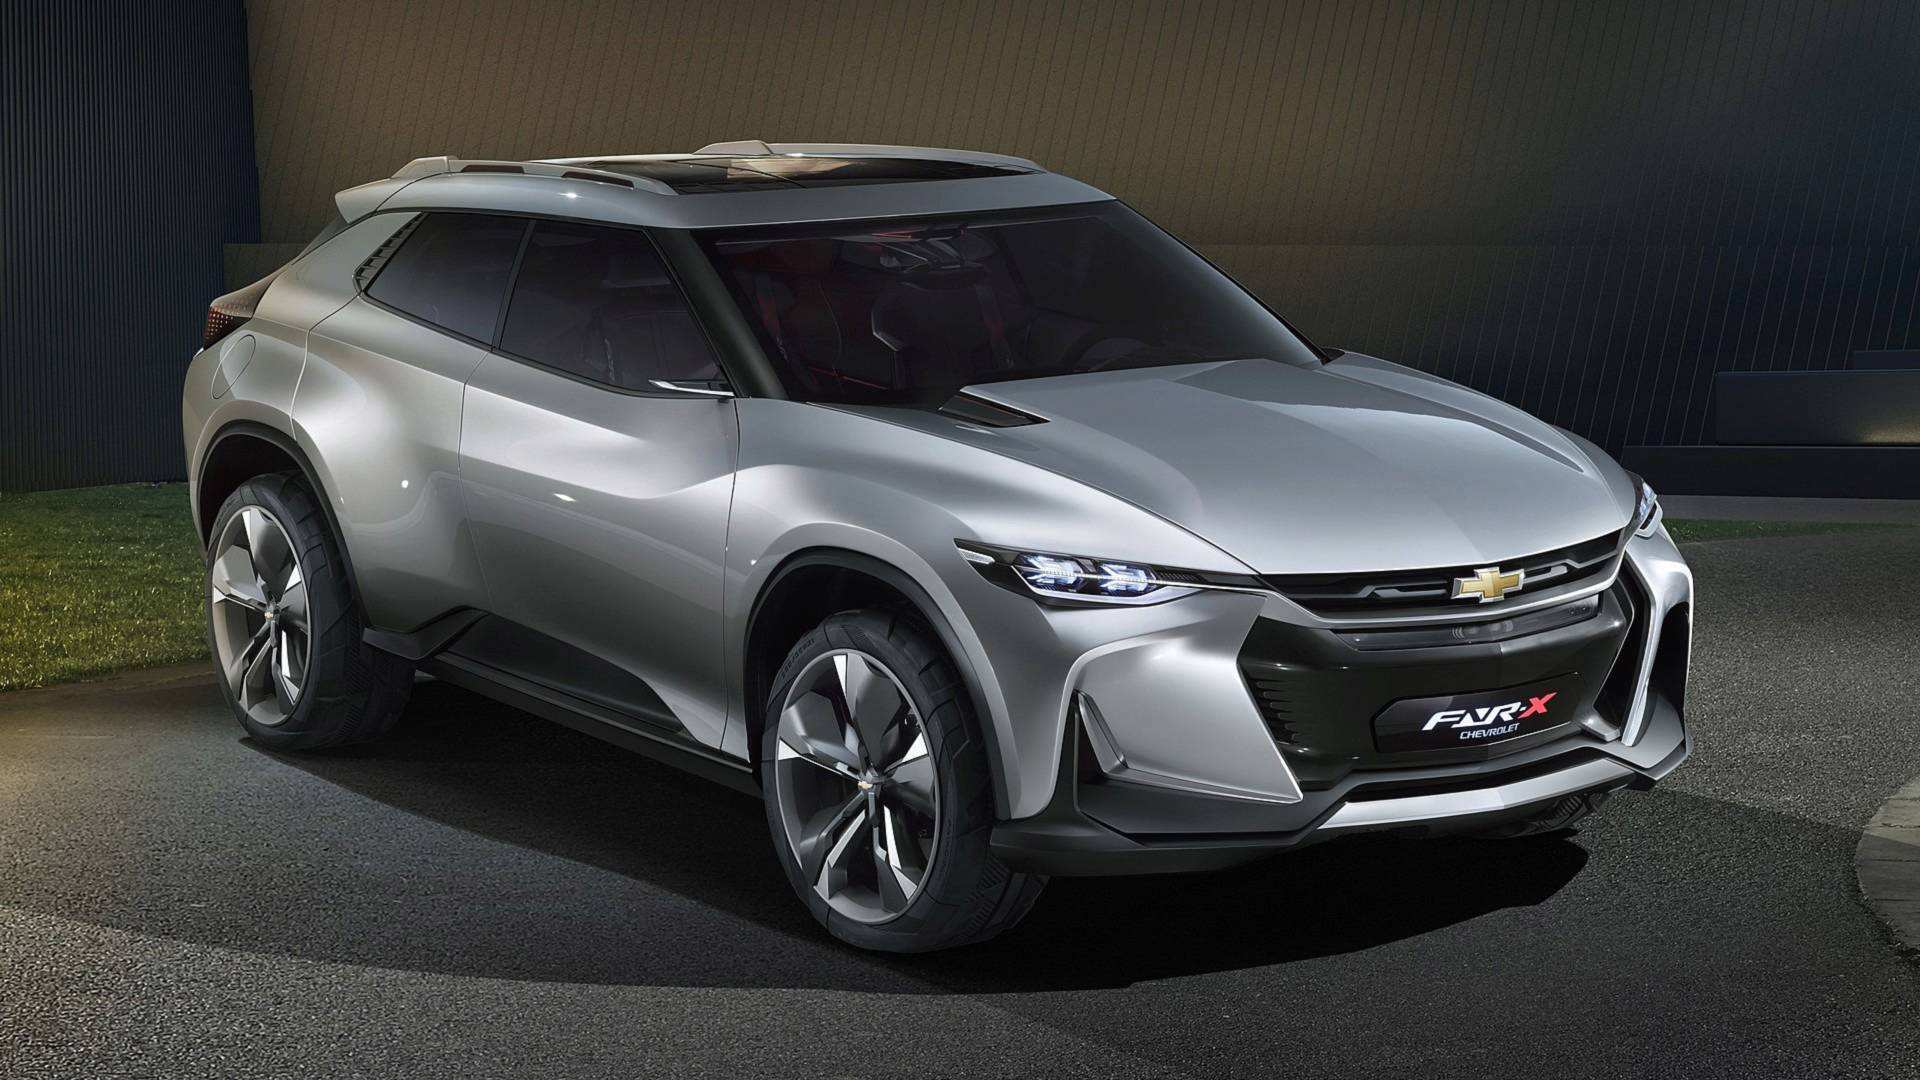 78 The Chevrolet Concept Cars 2020 Price and Review by Chevrolet Concept Cars 2020